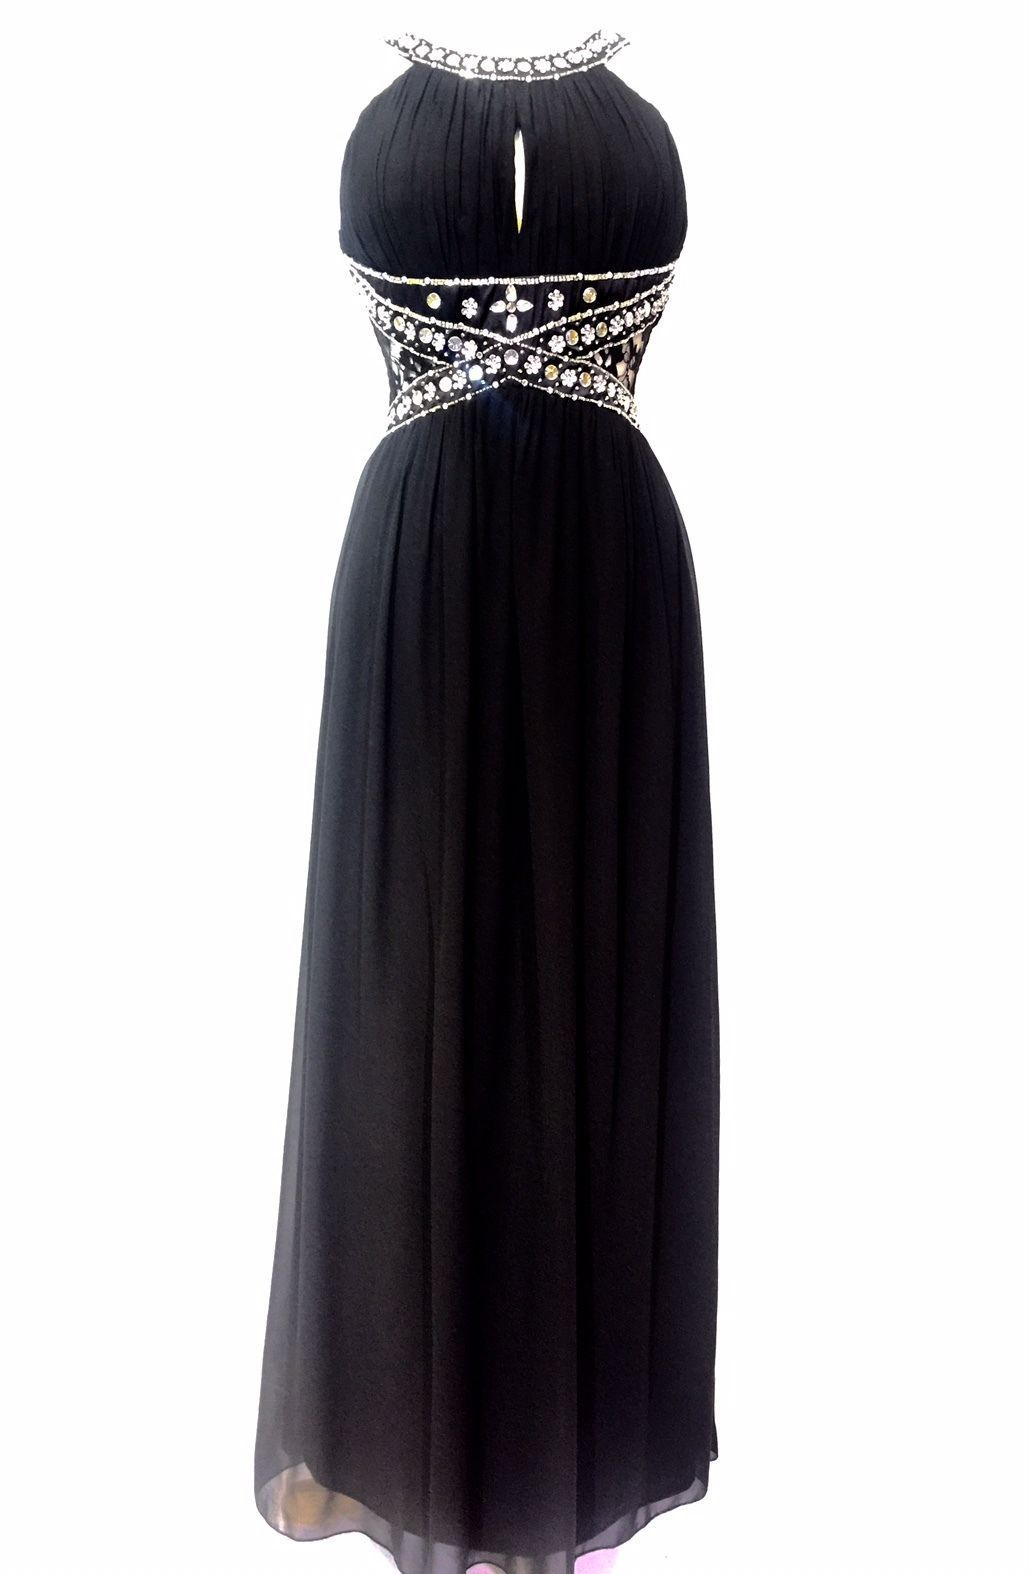 Black embellished maxi dress cocktail prom gown party prom gown size